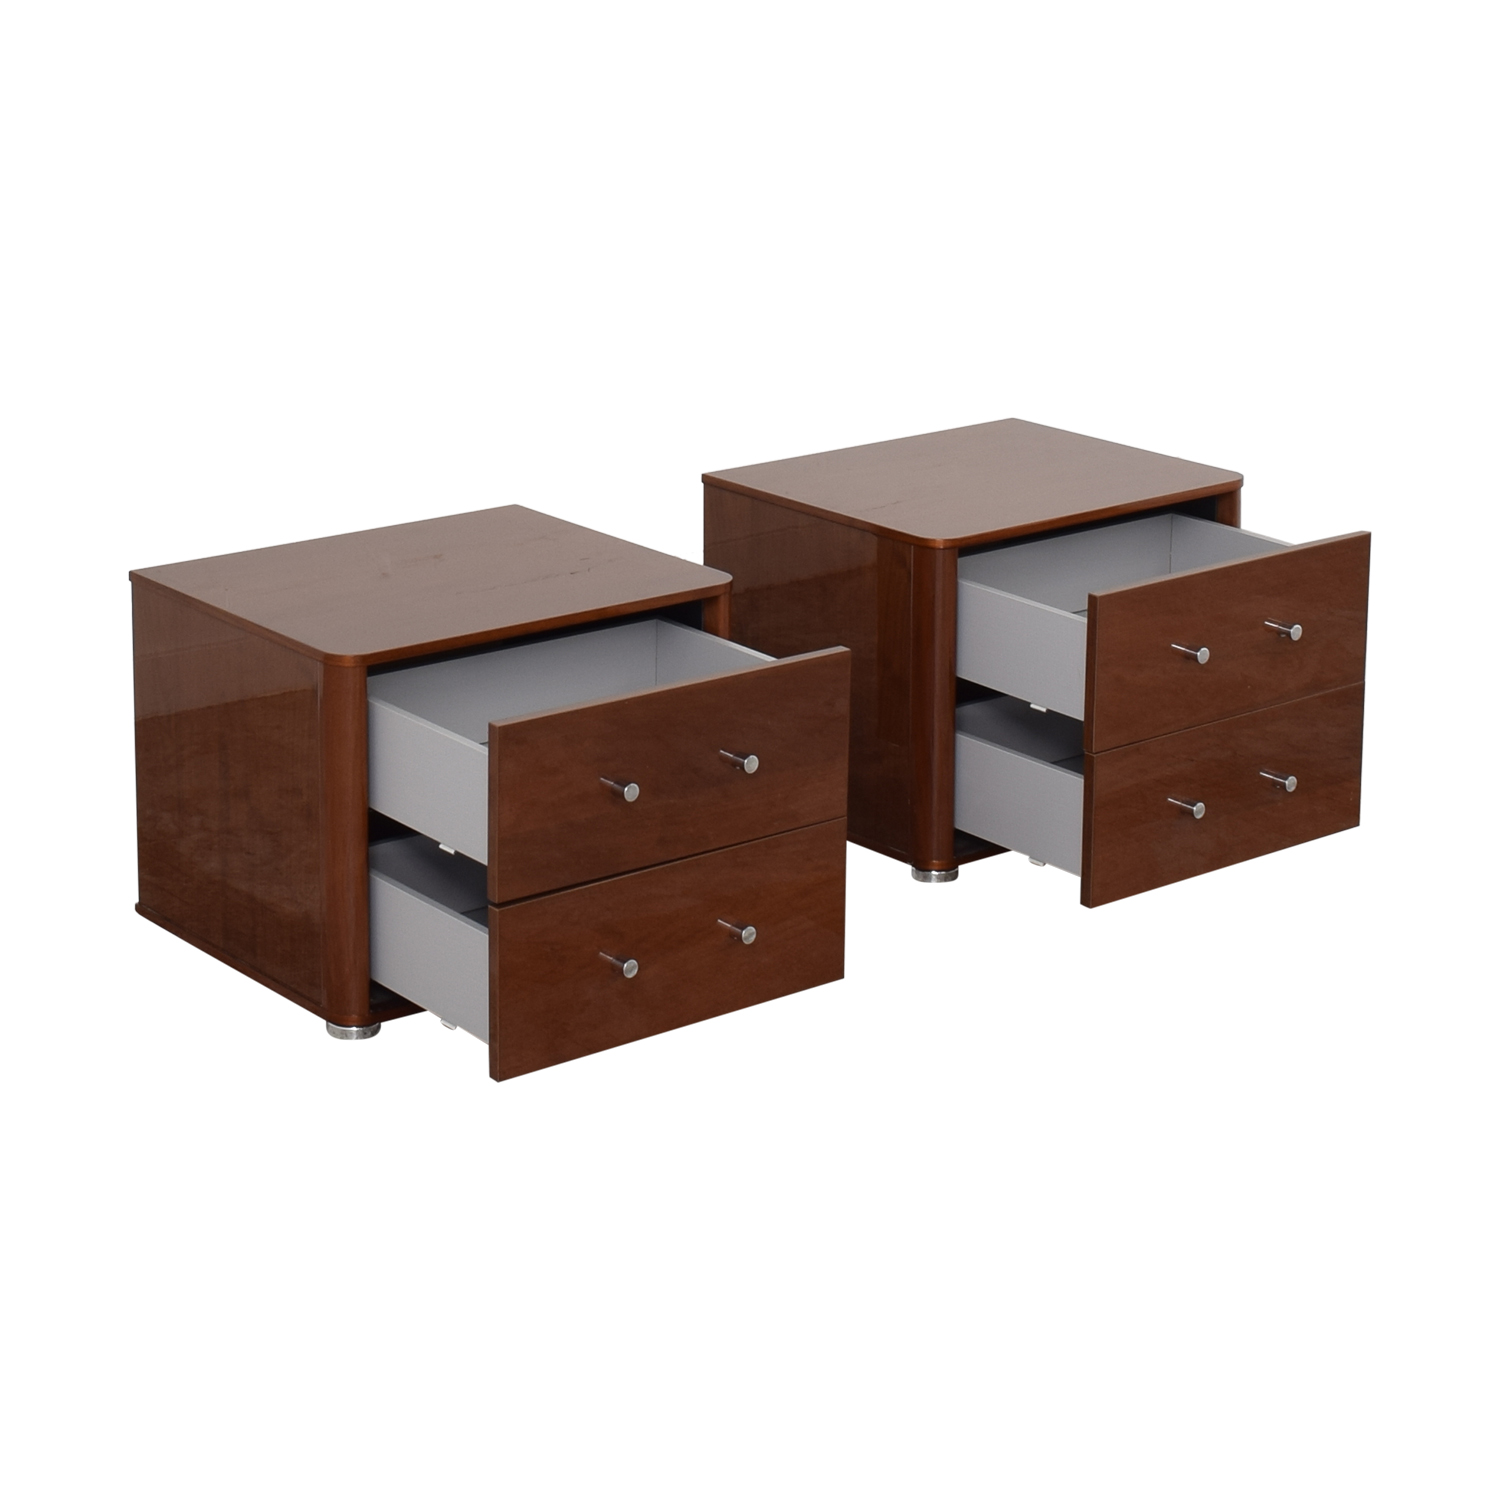 buy Noci Design Camelgroup Two Drawer Nighstands Noci Design End Tables